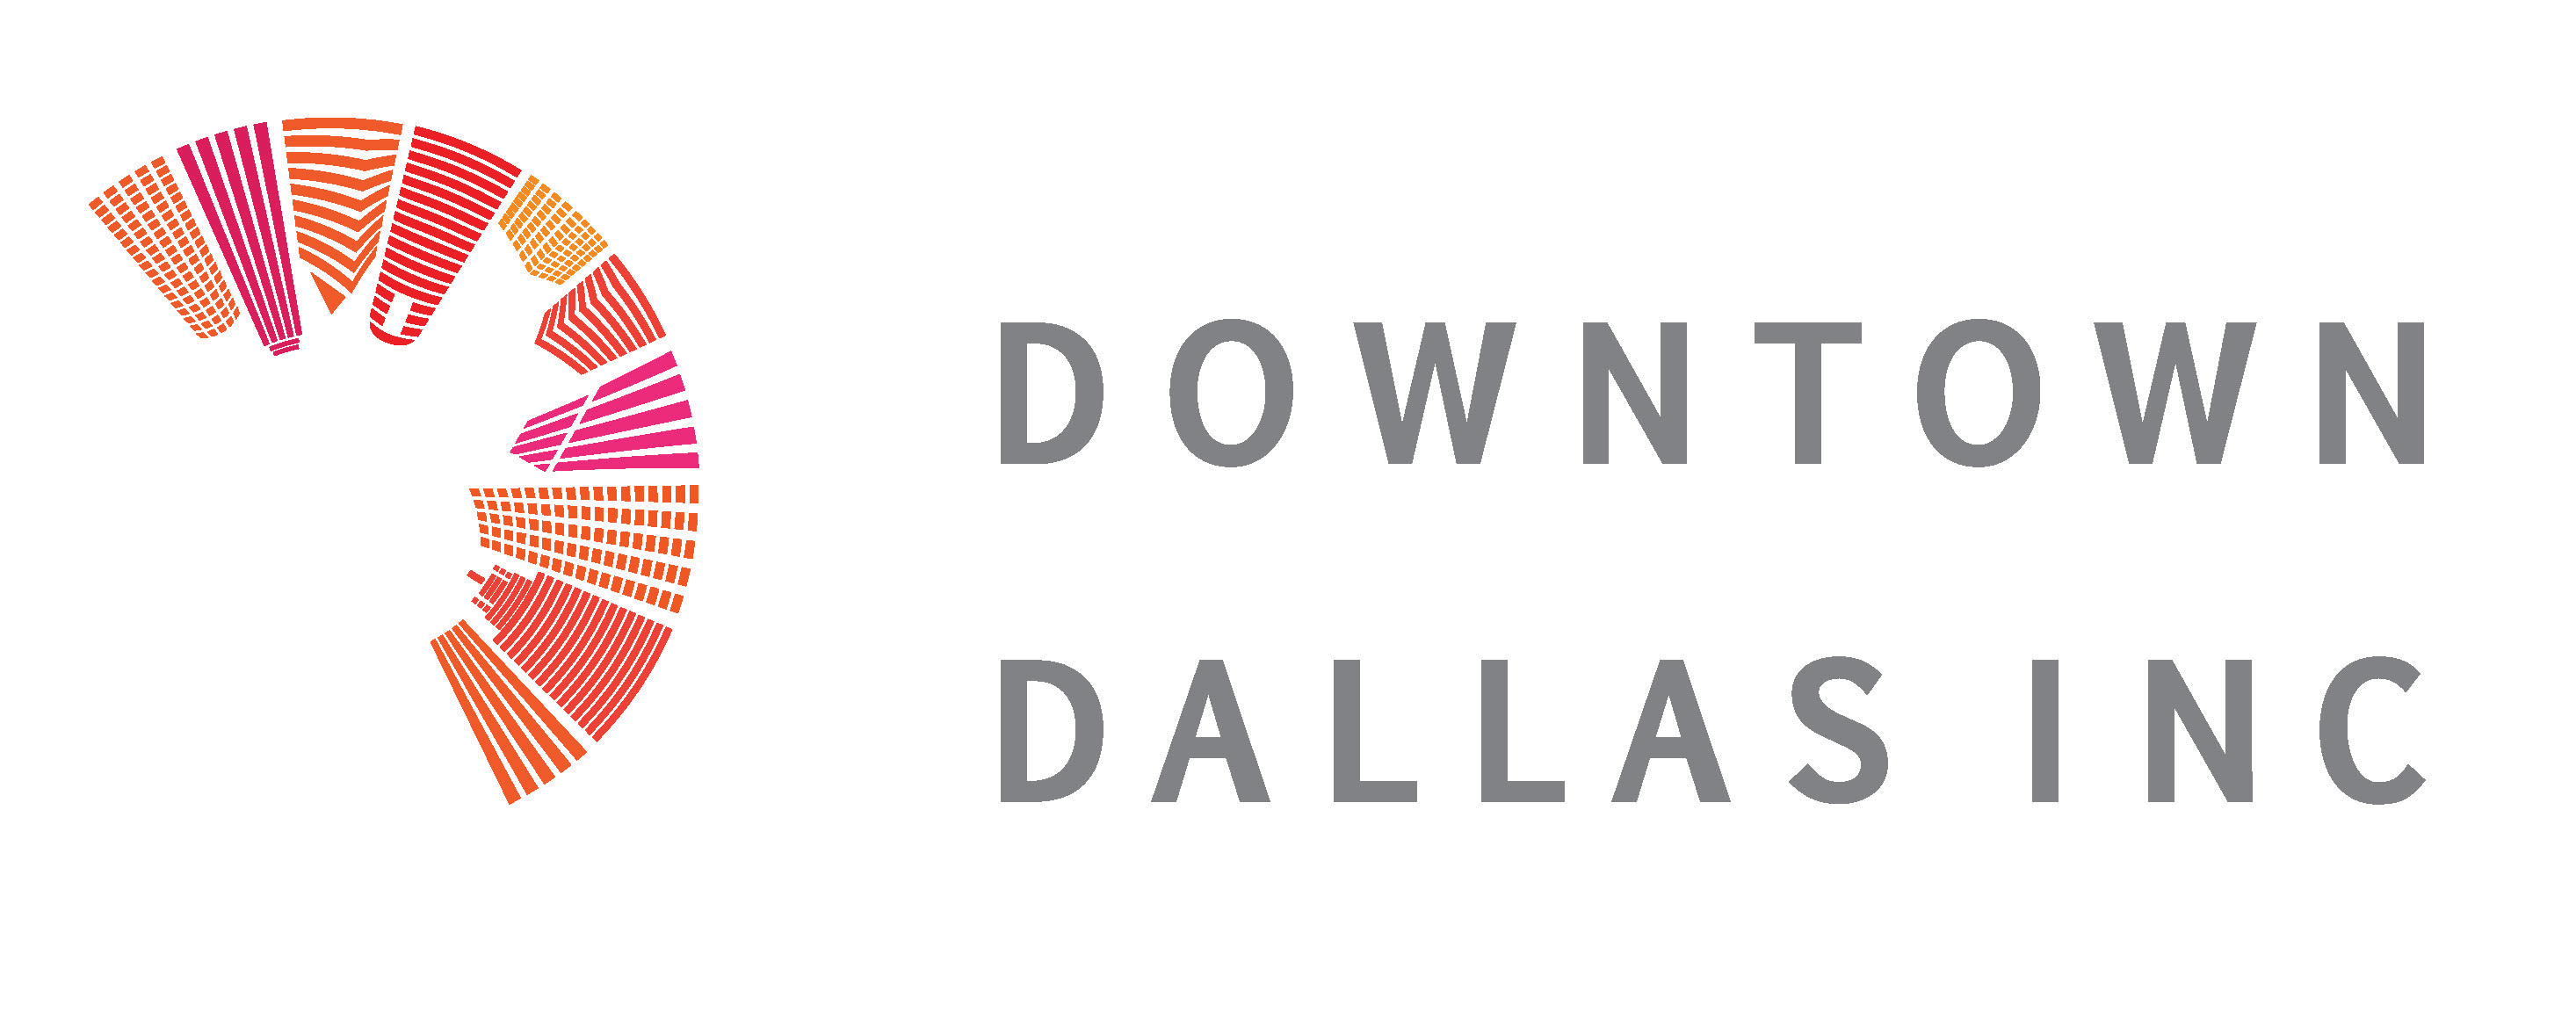 CELEBRATE ARCHITECTURE - Downtown Dallas Inc logo